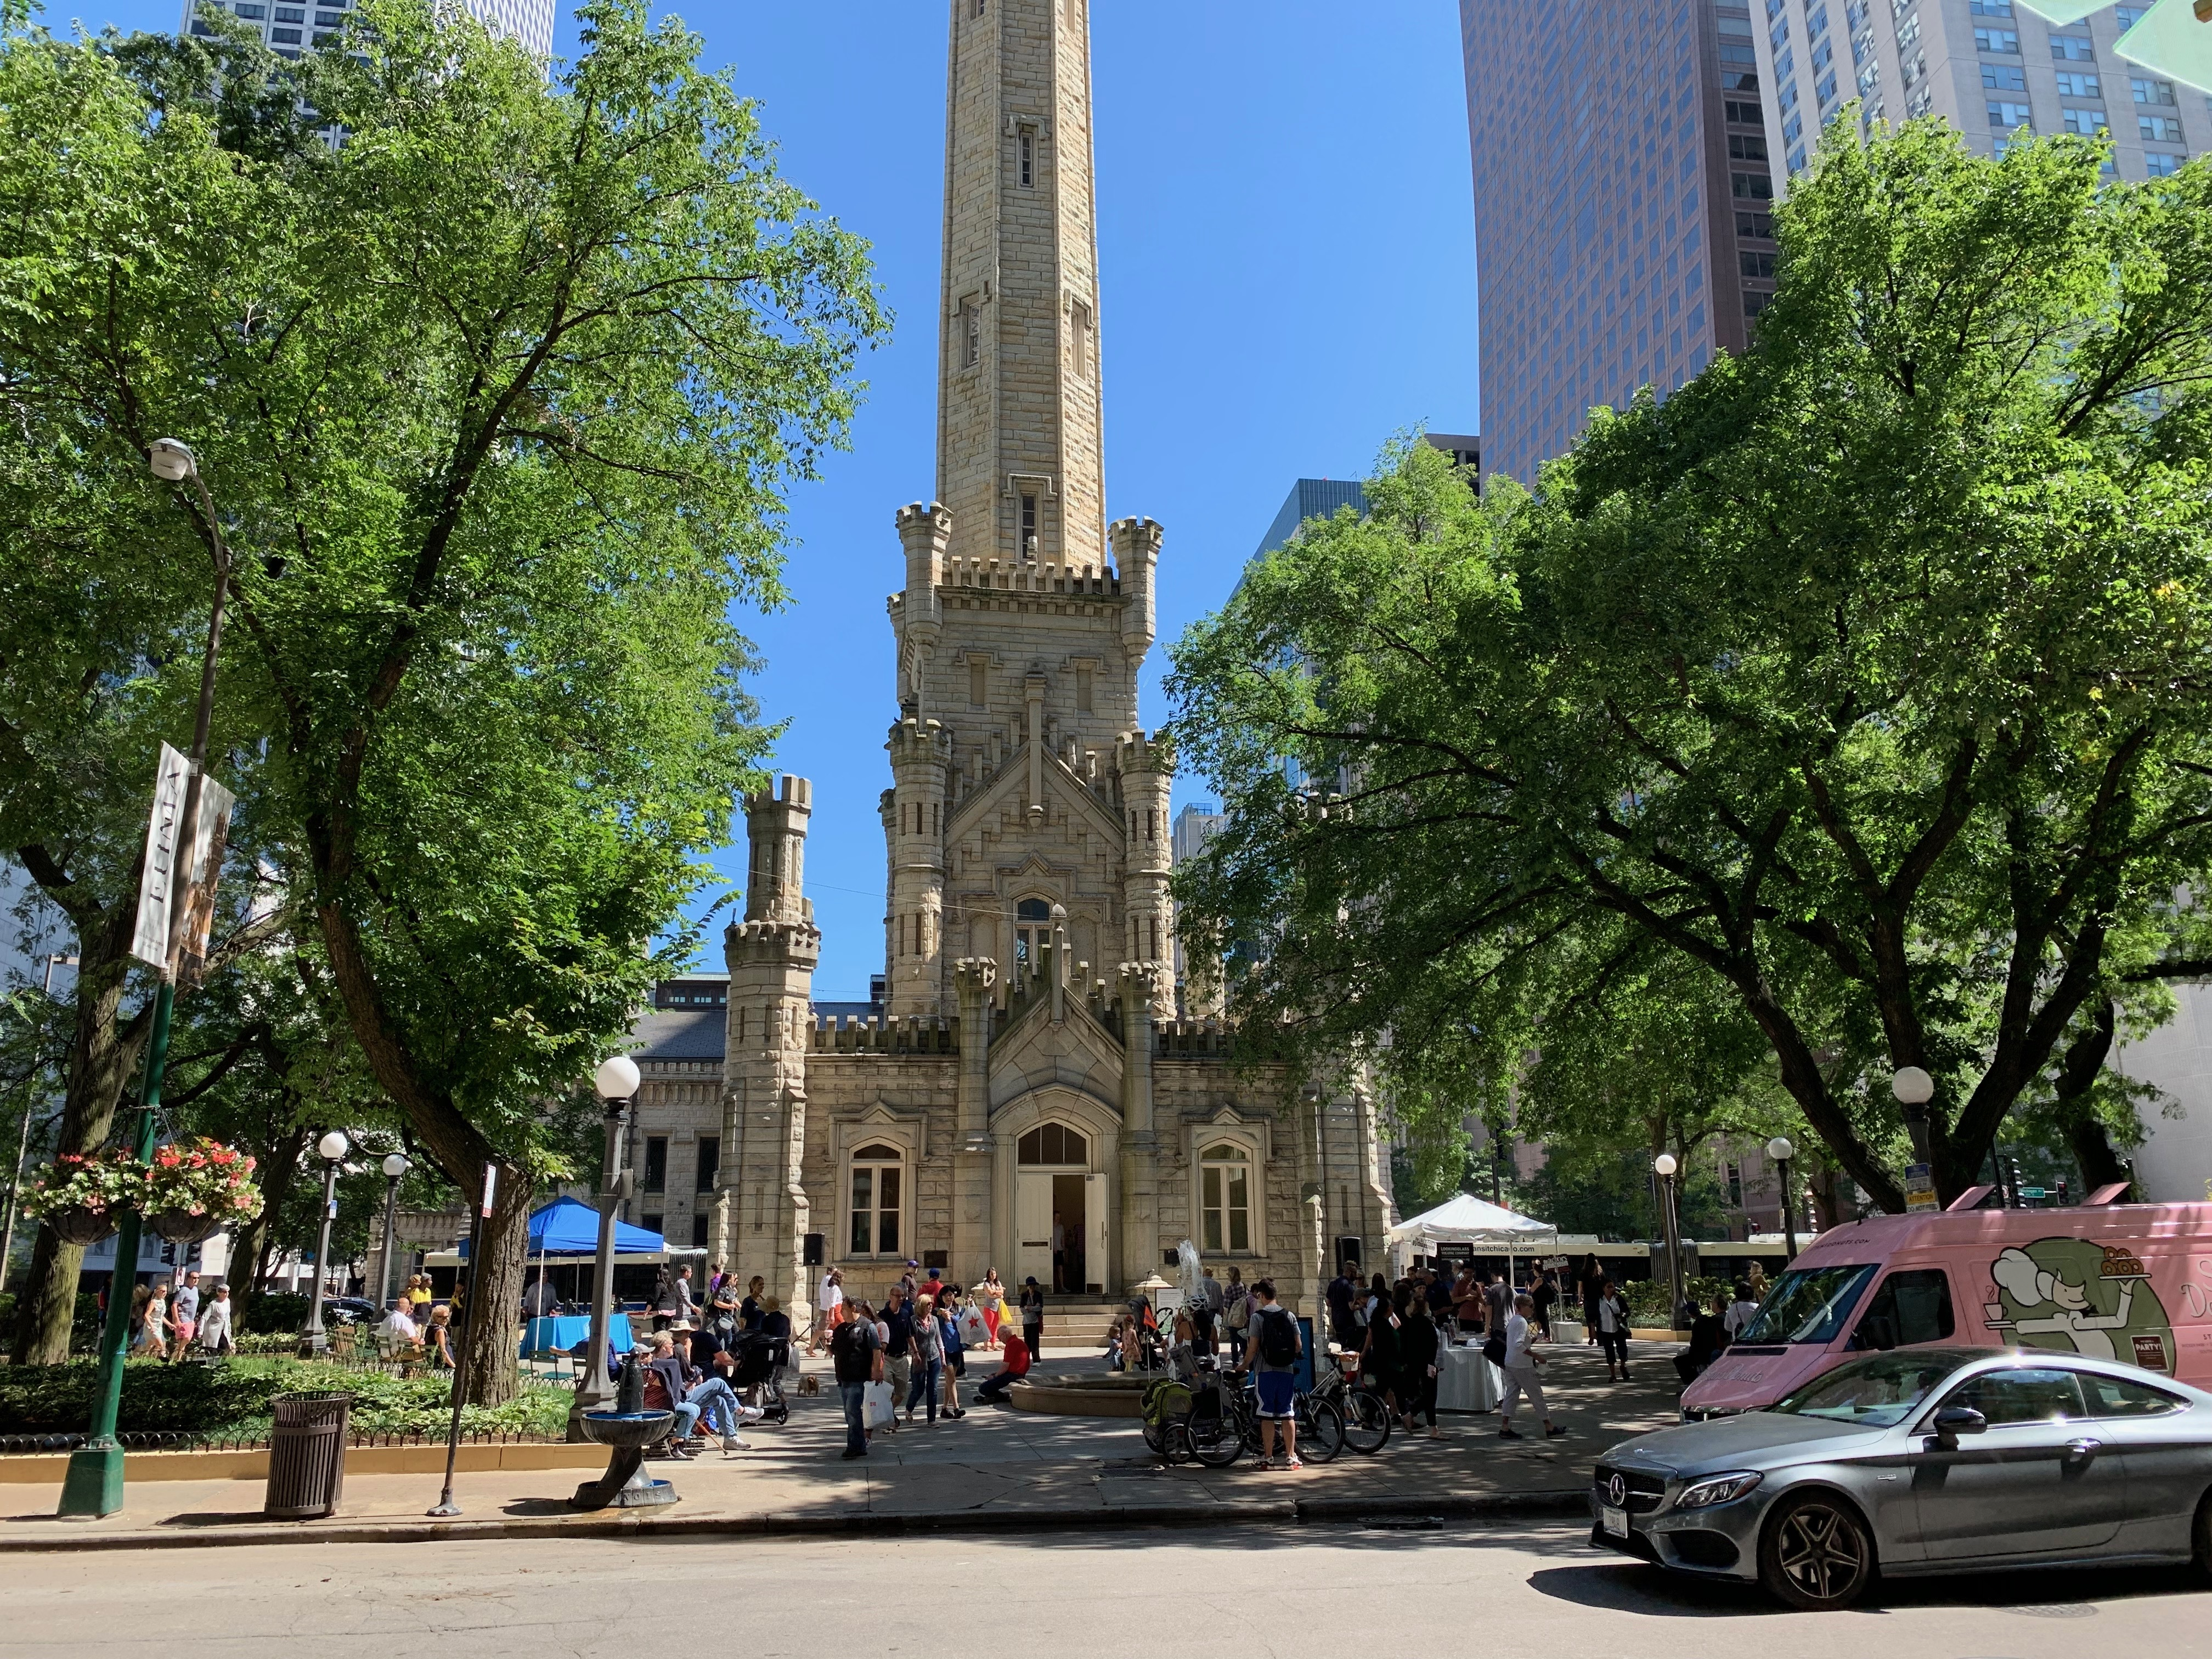 The iconic Chicago Water Tower, 806 N. Michigan Ave., turns 150 this month. The city celebrated on Saturday with a series of art, lectures and more about its history.